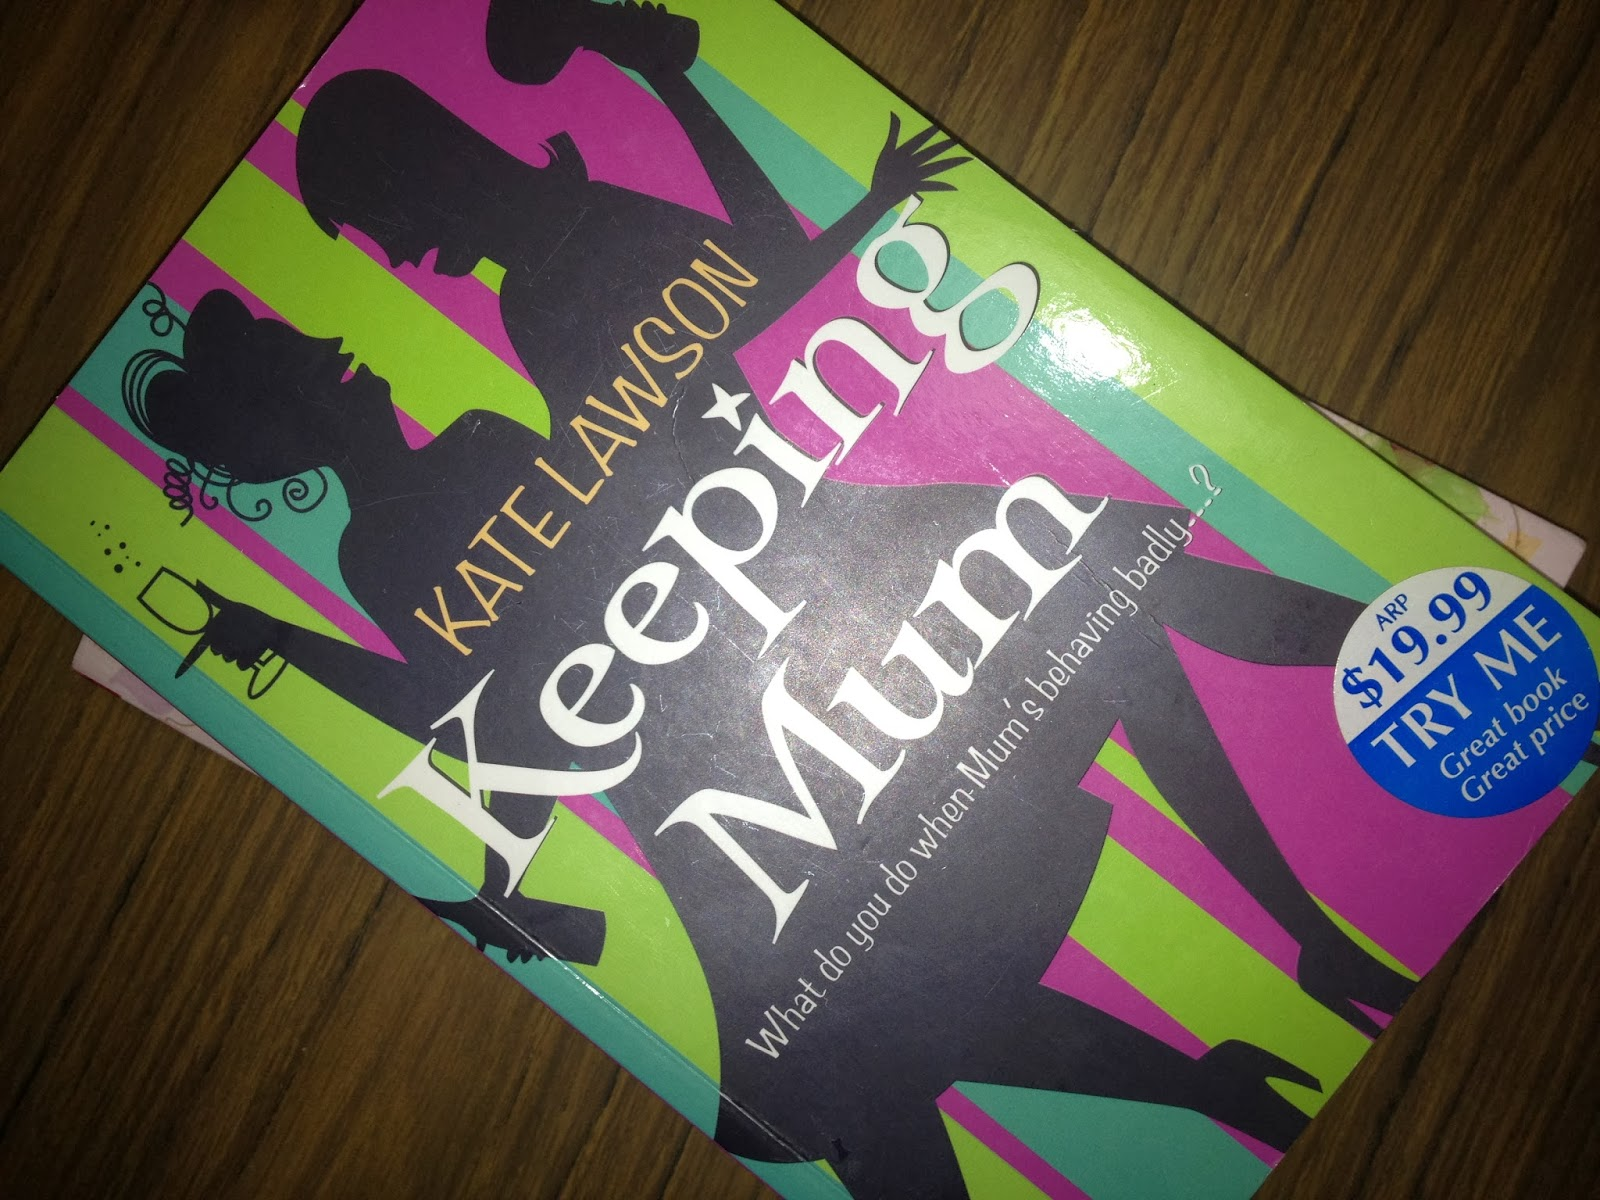 Keeping Mum (2009) by Kate Lawson